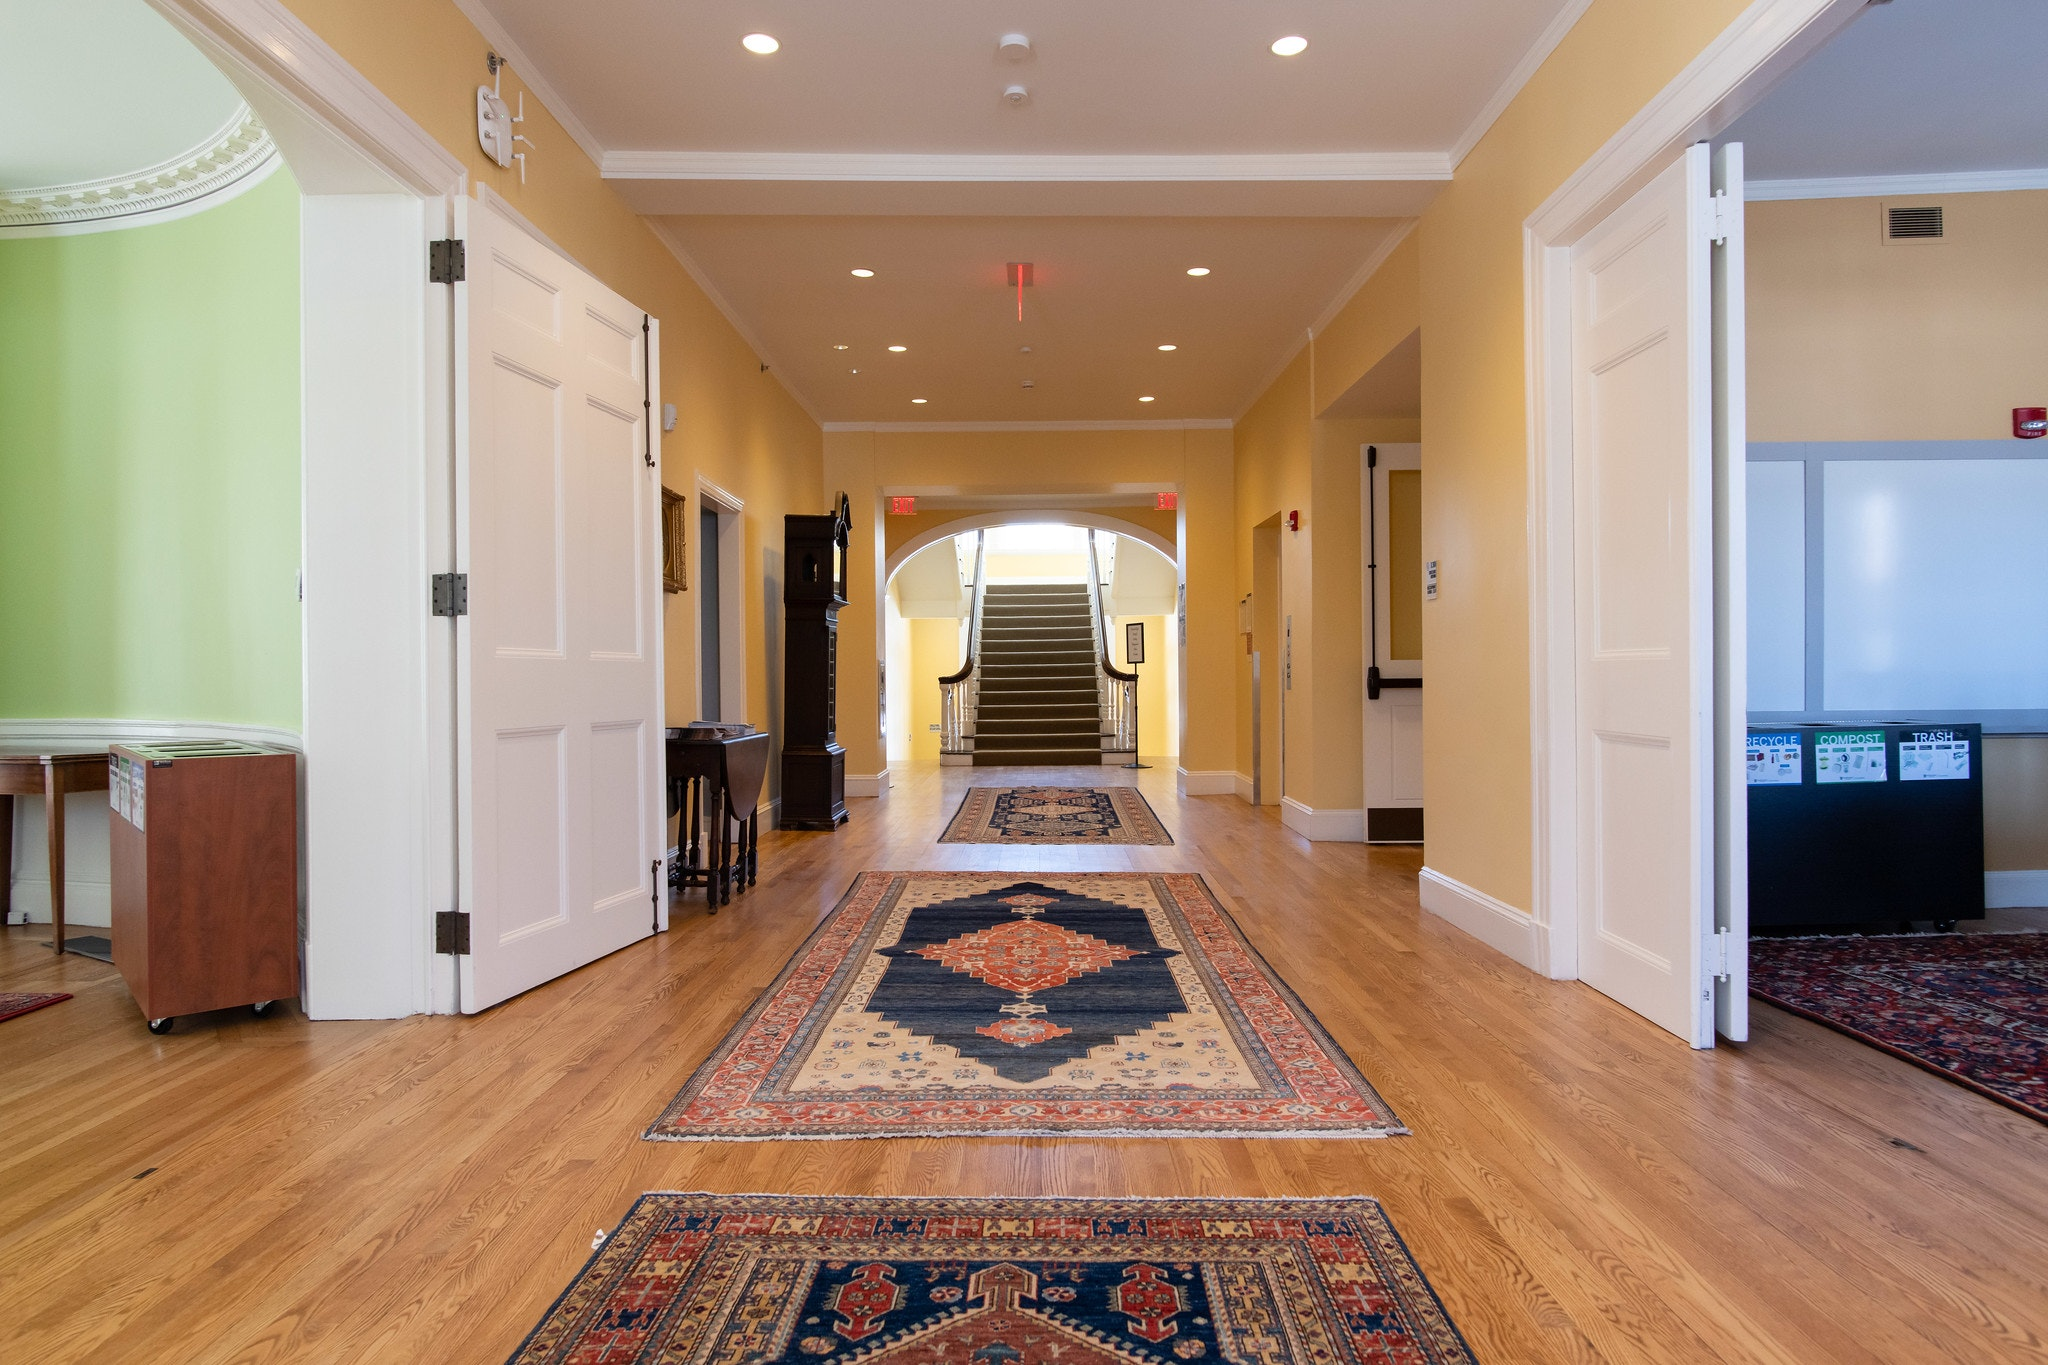 Lobby with wood floors and three printed rugs. At the end of the lobby there is a dark brown staircase leading upstairs.